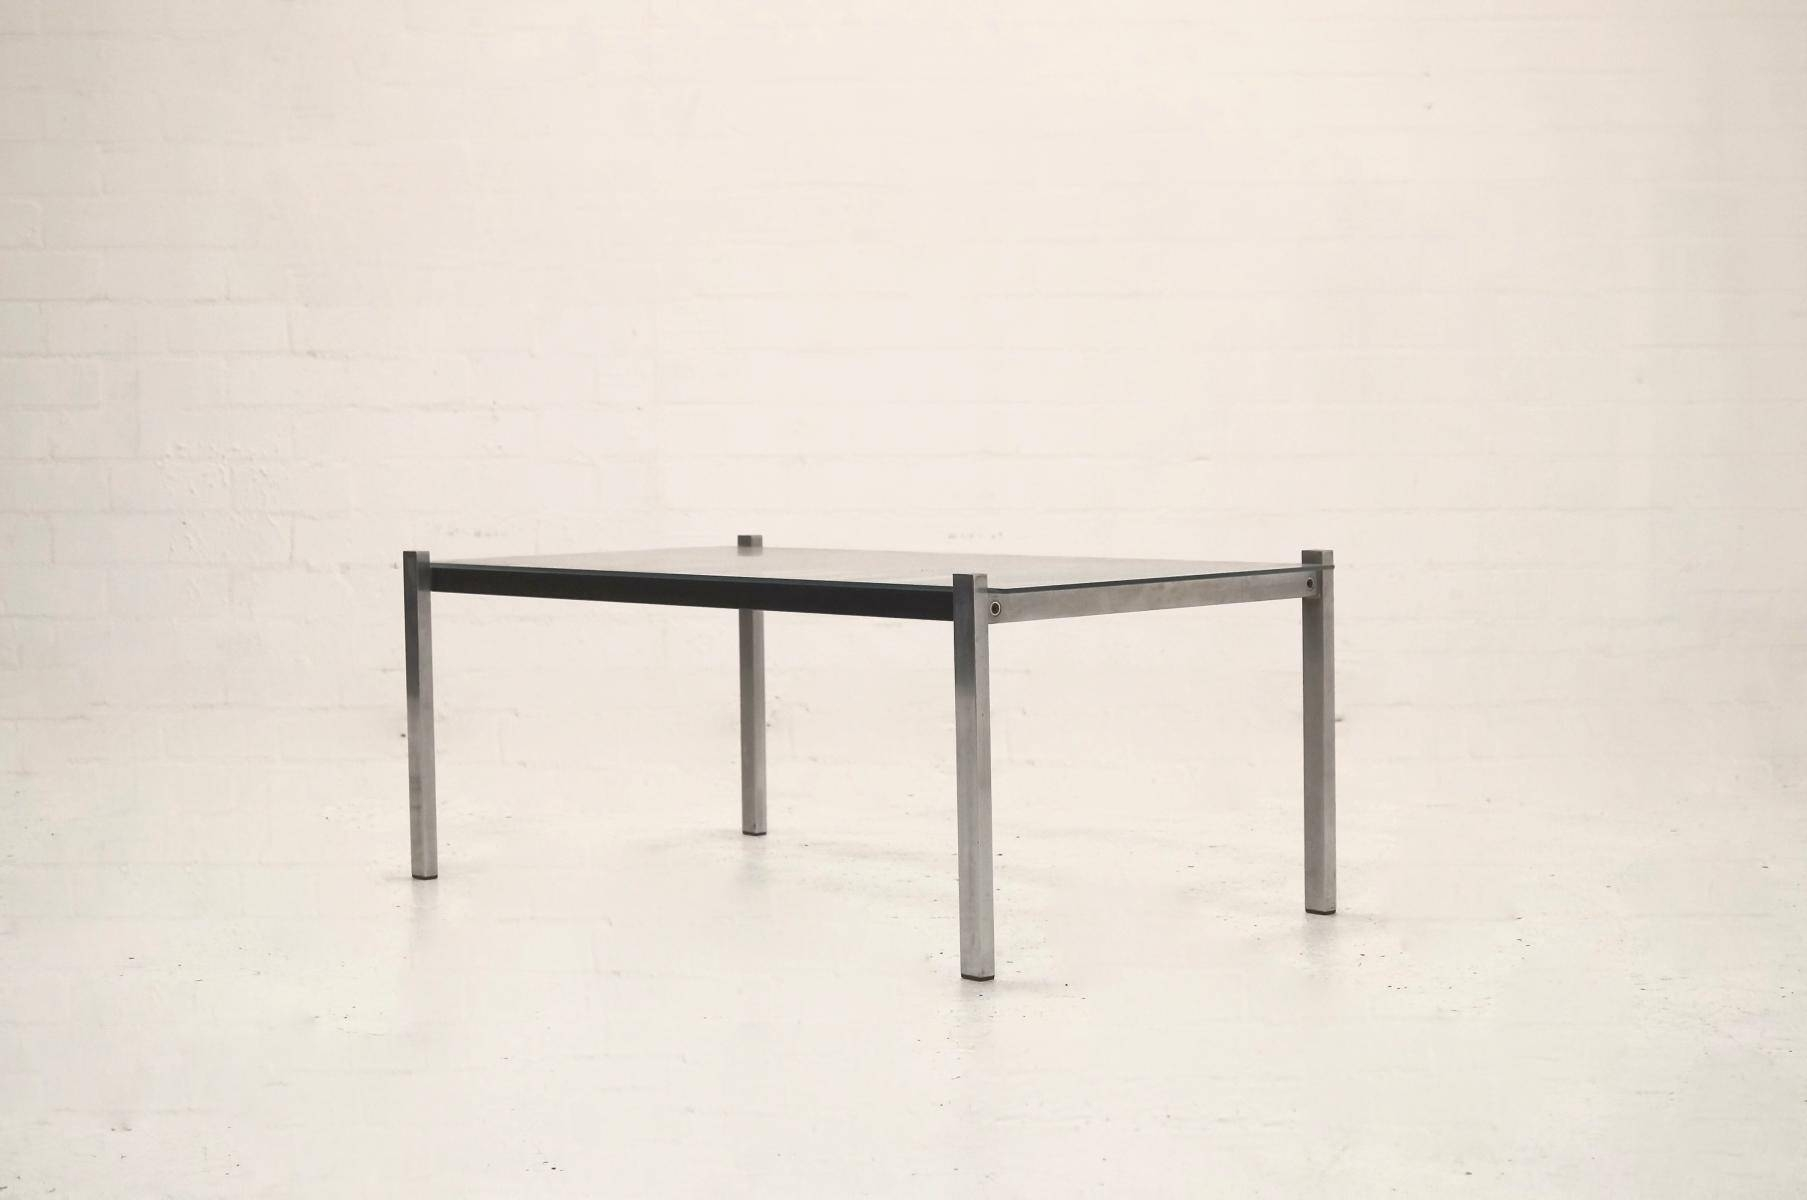 Mid Century Modern Metal And Glass Coffee Table, 1960S For Sale At With Regard To Coffee Tables Glass And Metal (View 24 of 30)